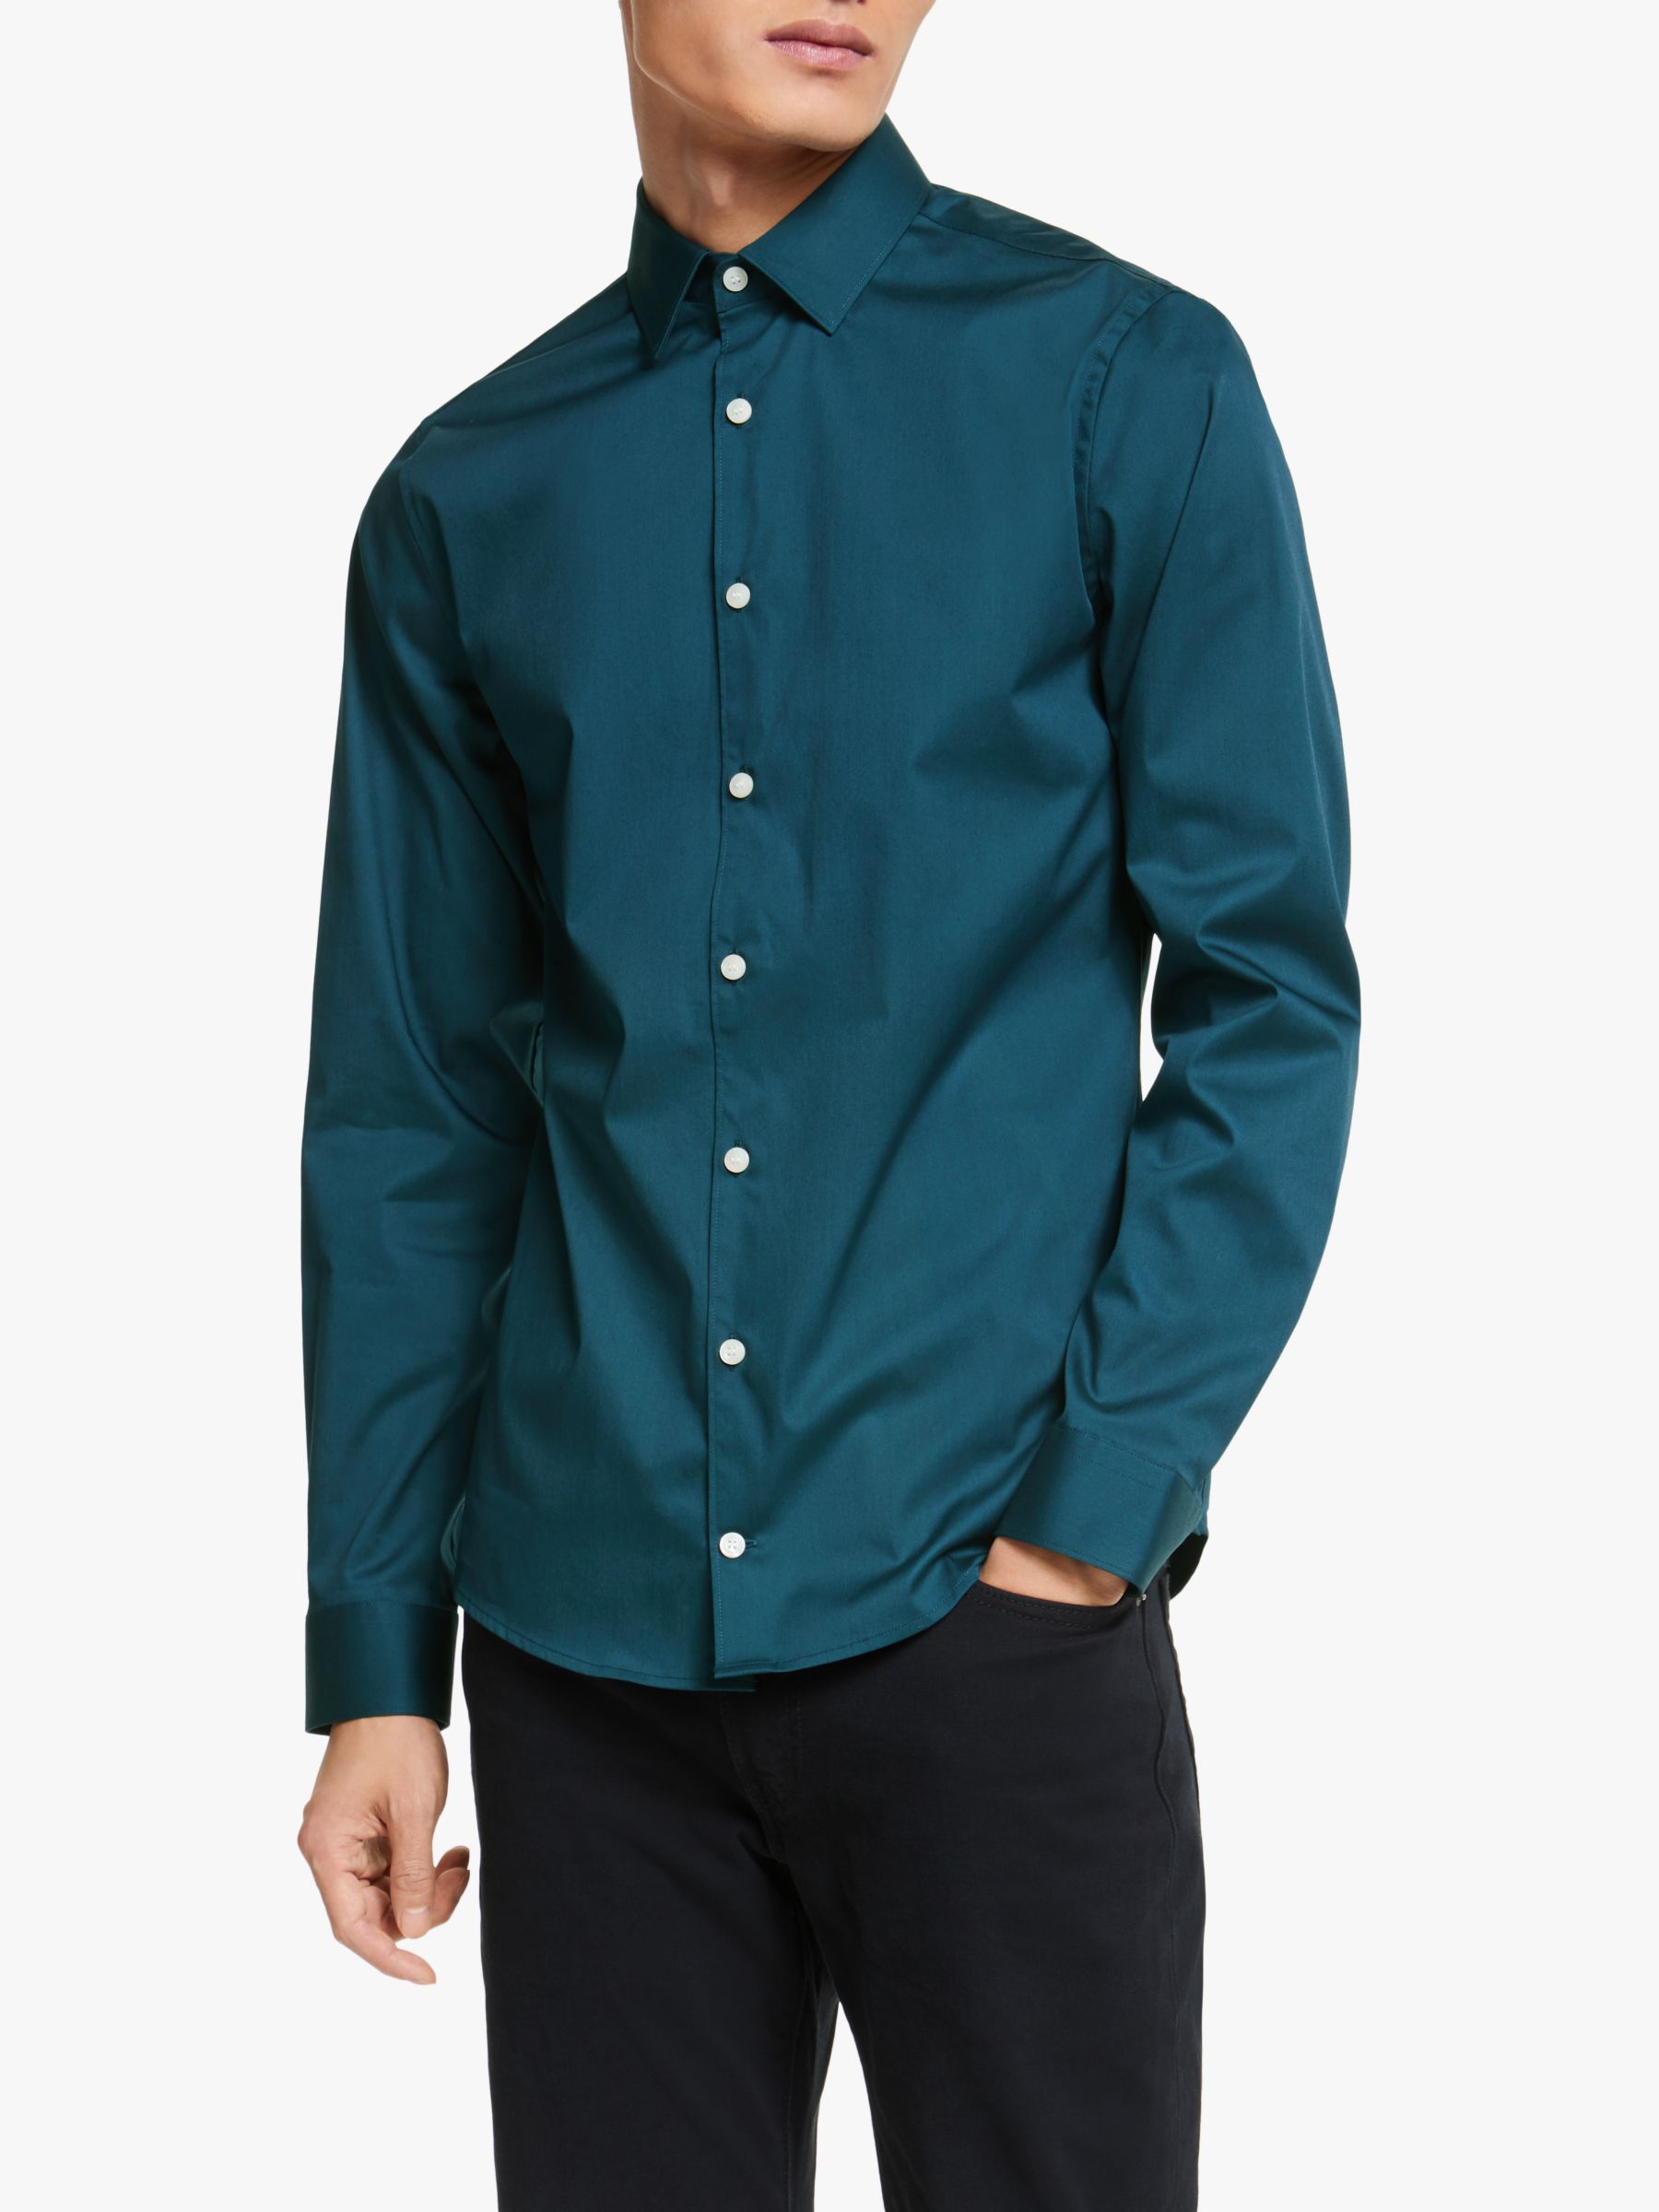 Tiger of Sweden Tiger of Sweden Filbrodie Regular Fit Shirt, Green